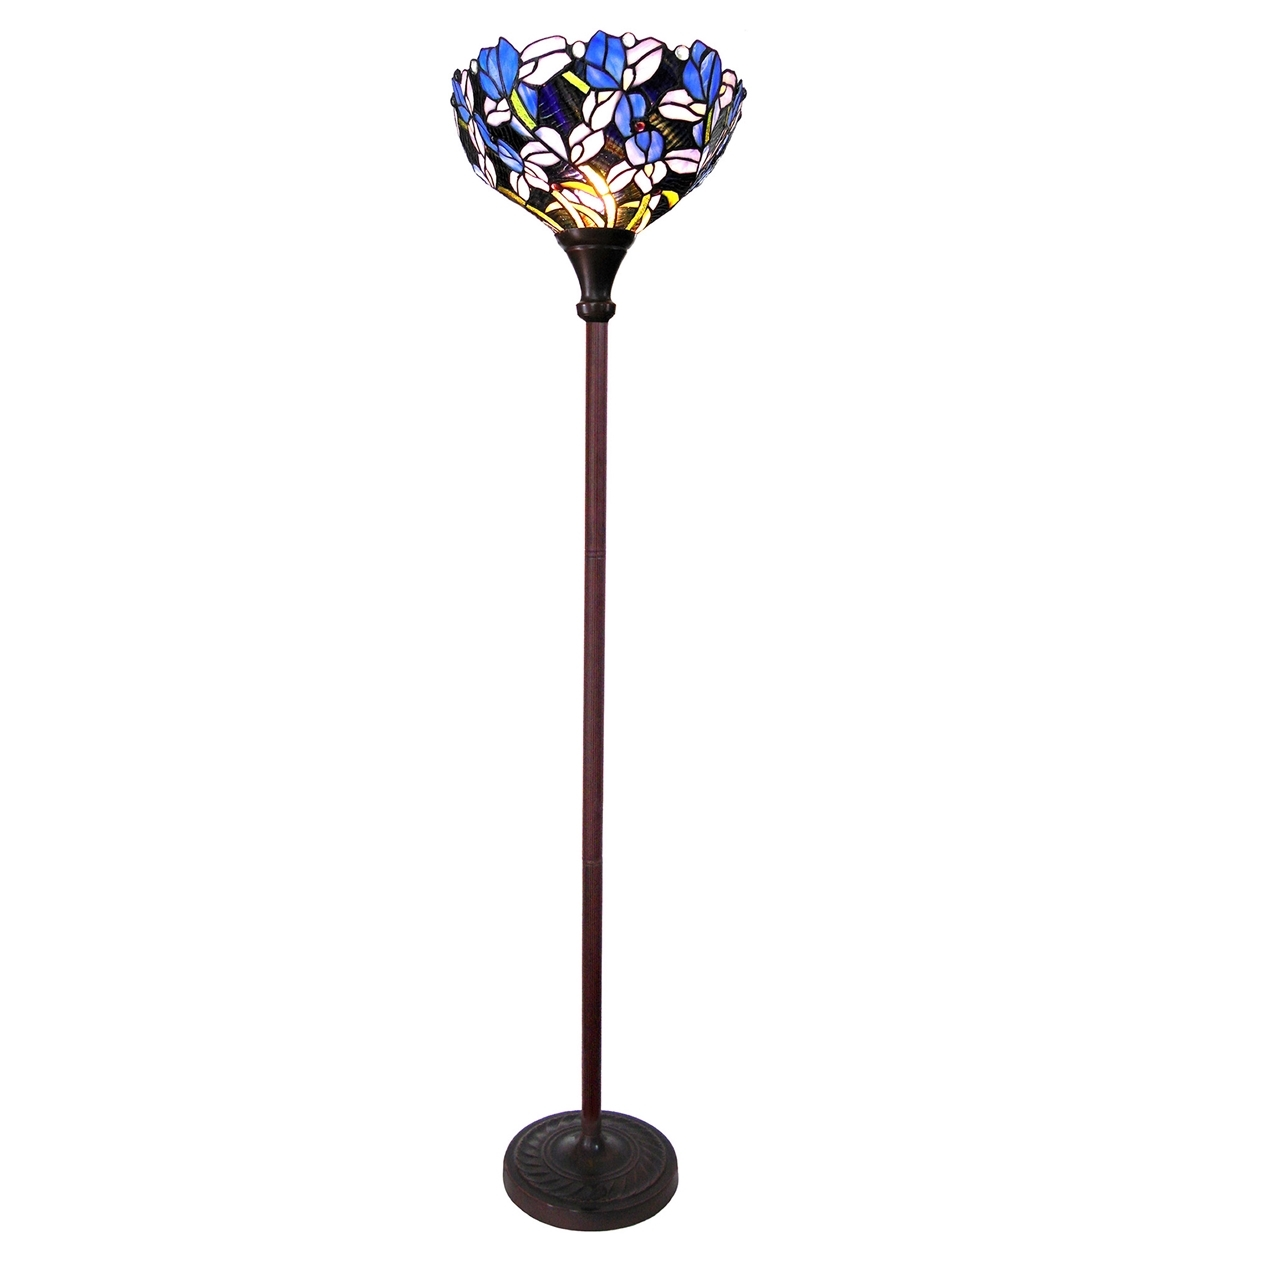 Image Result For Tiffany Torch Floor Lamps